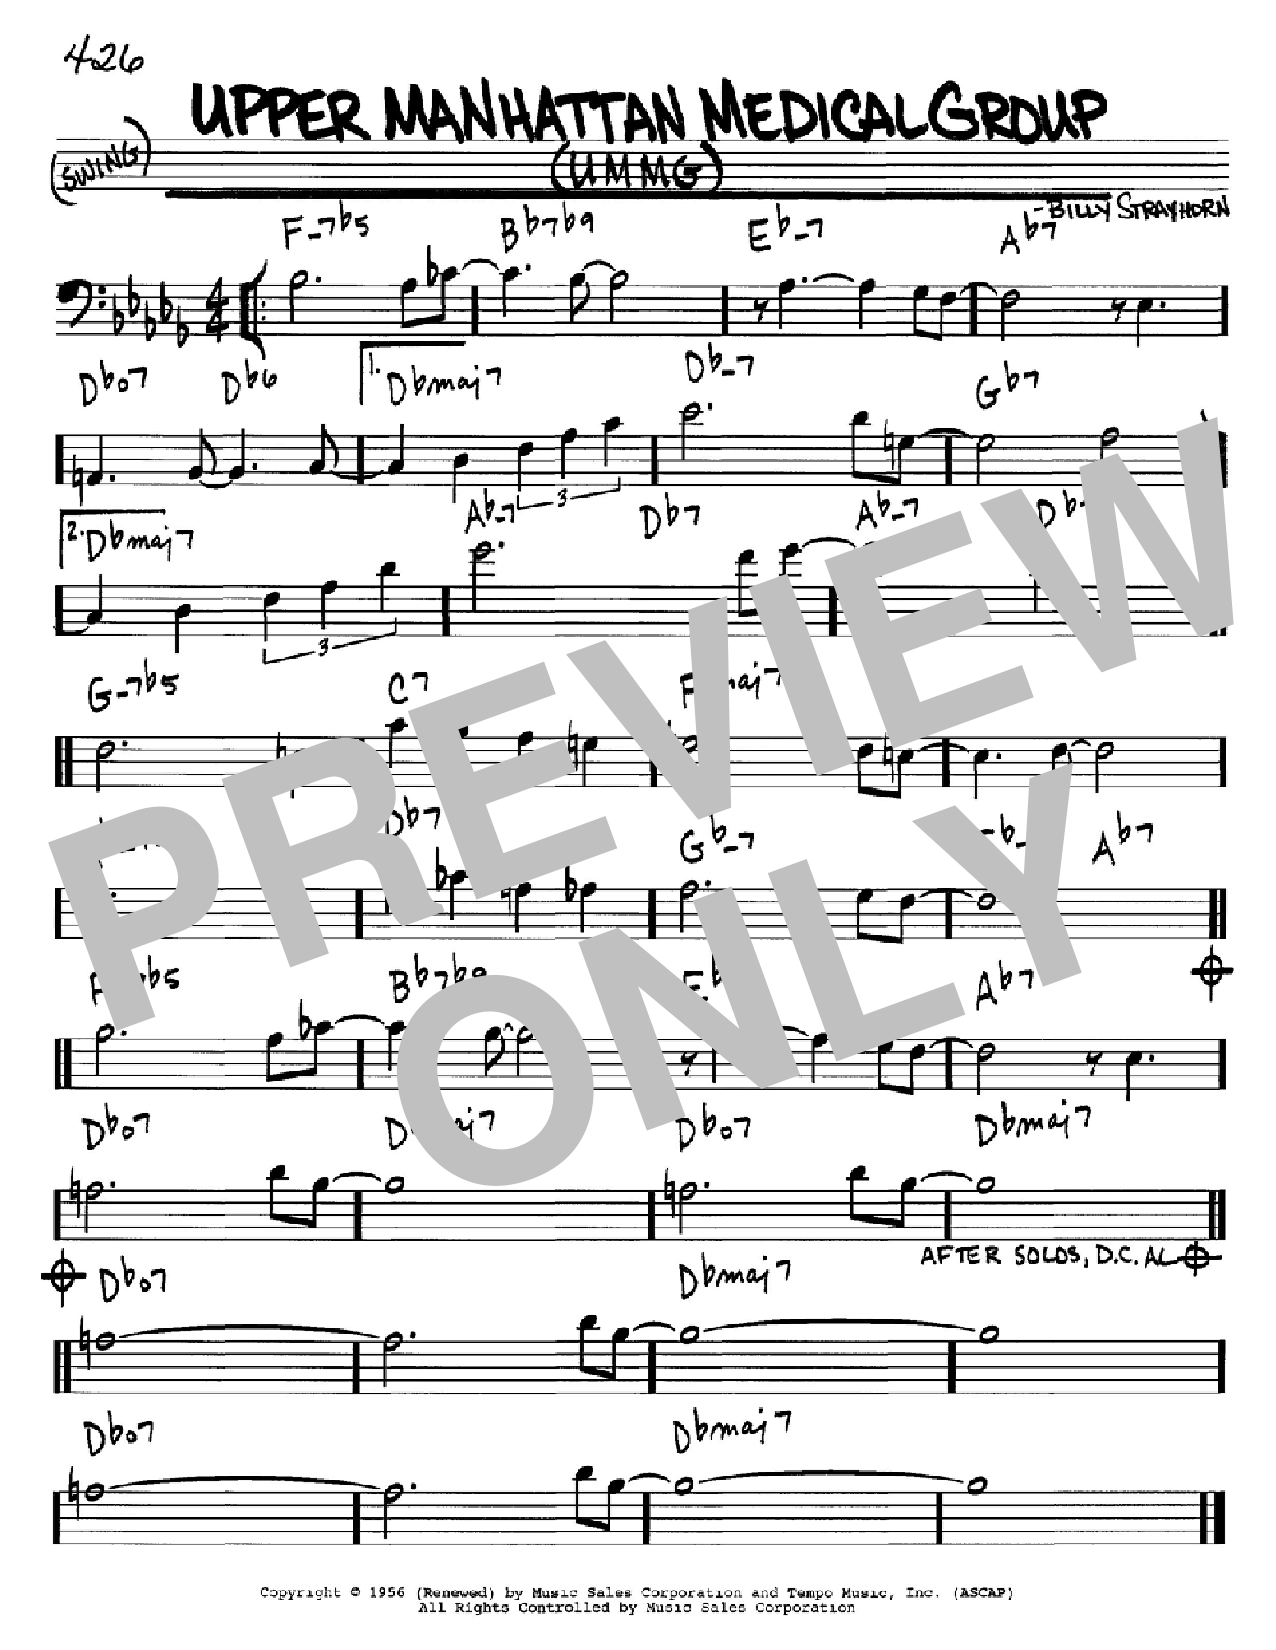 Upper Manhattan Medical Group (UMMG) Sheet Music